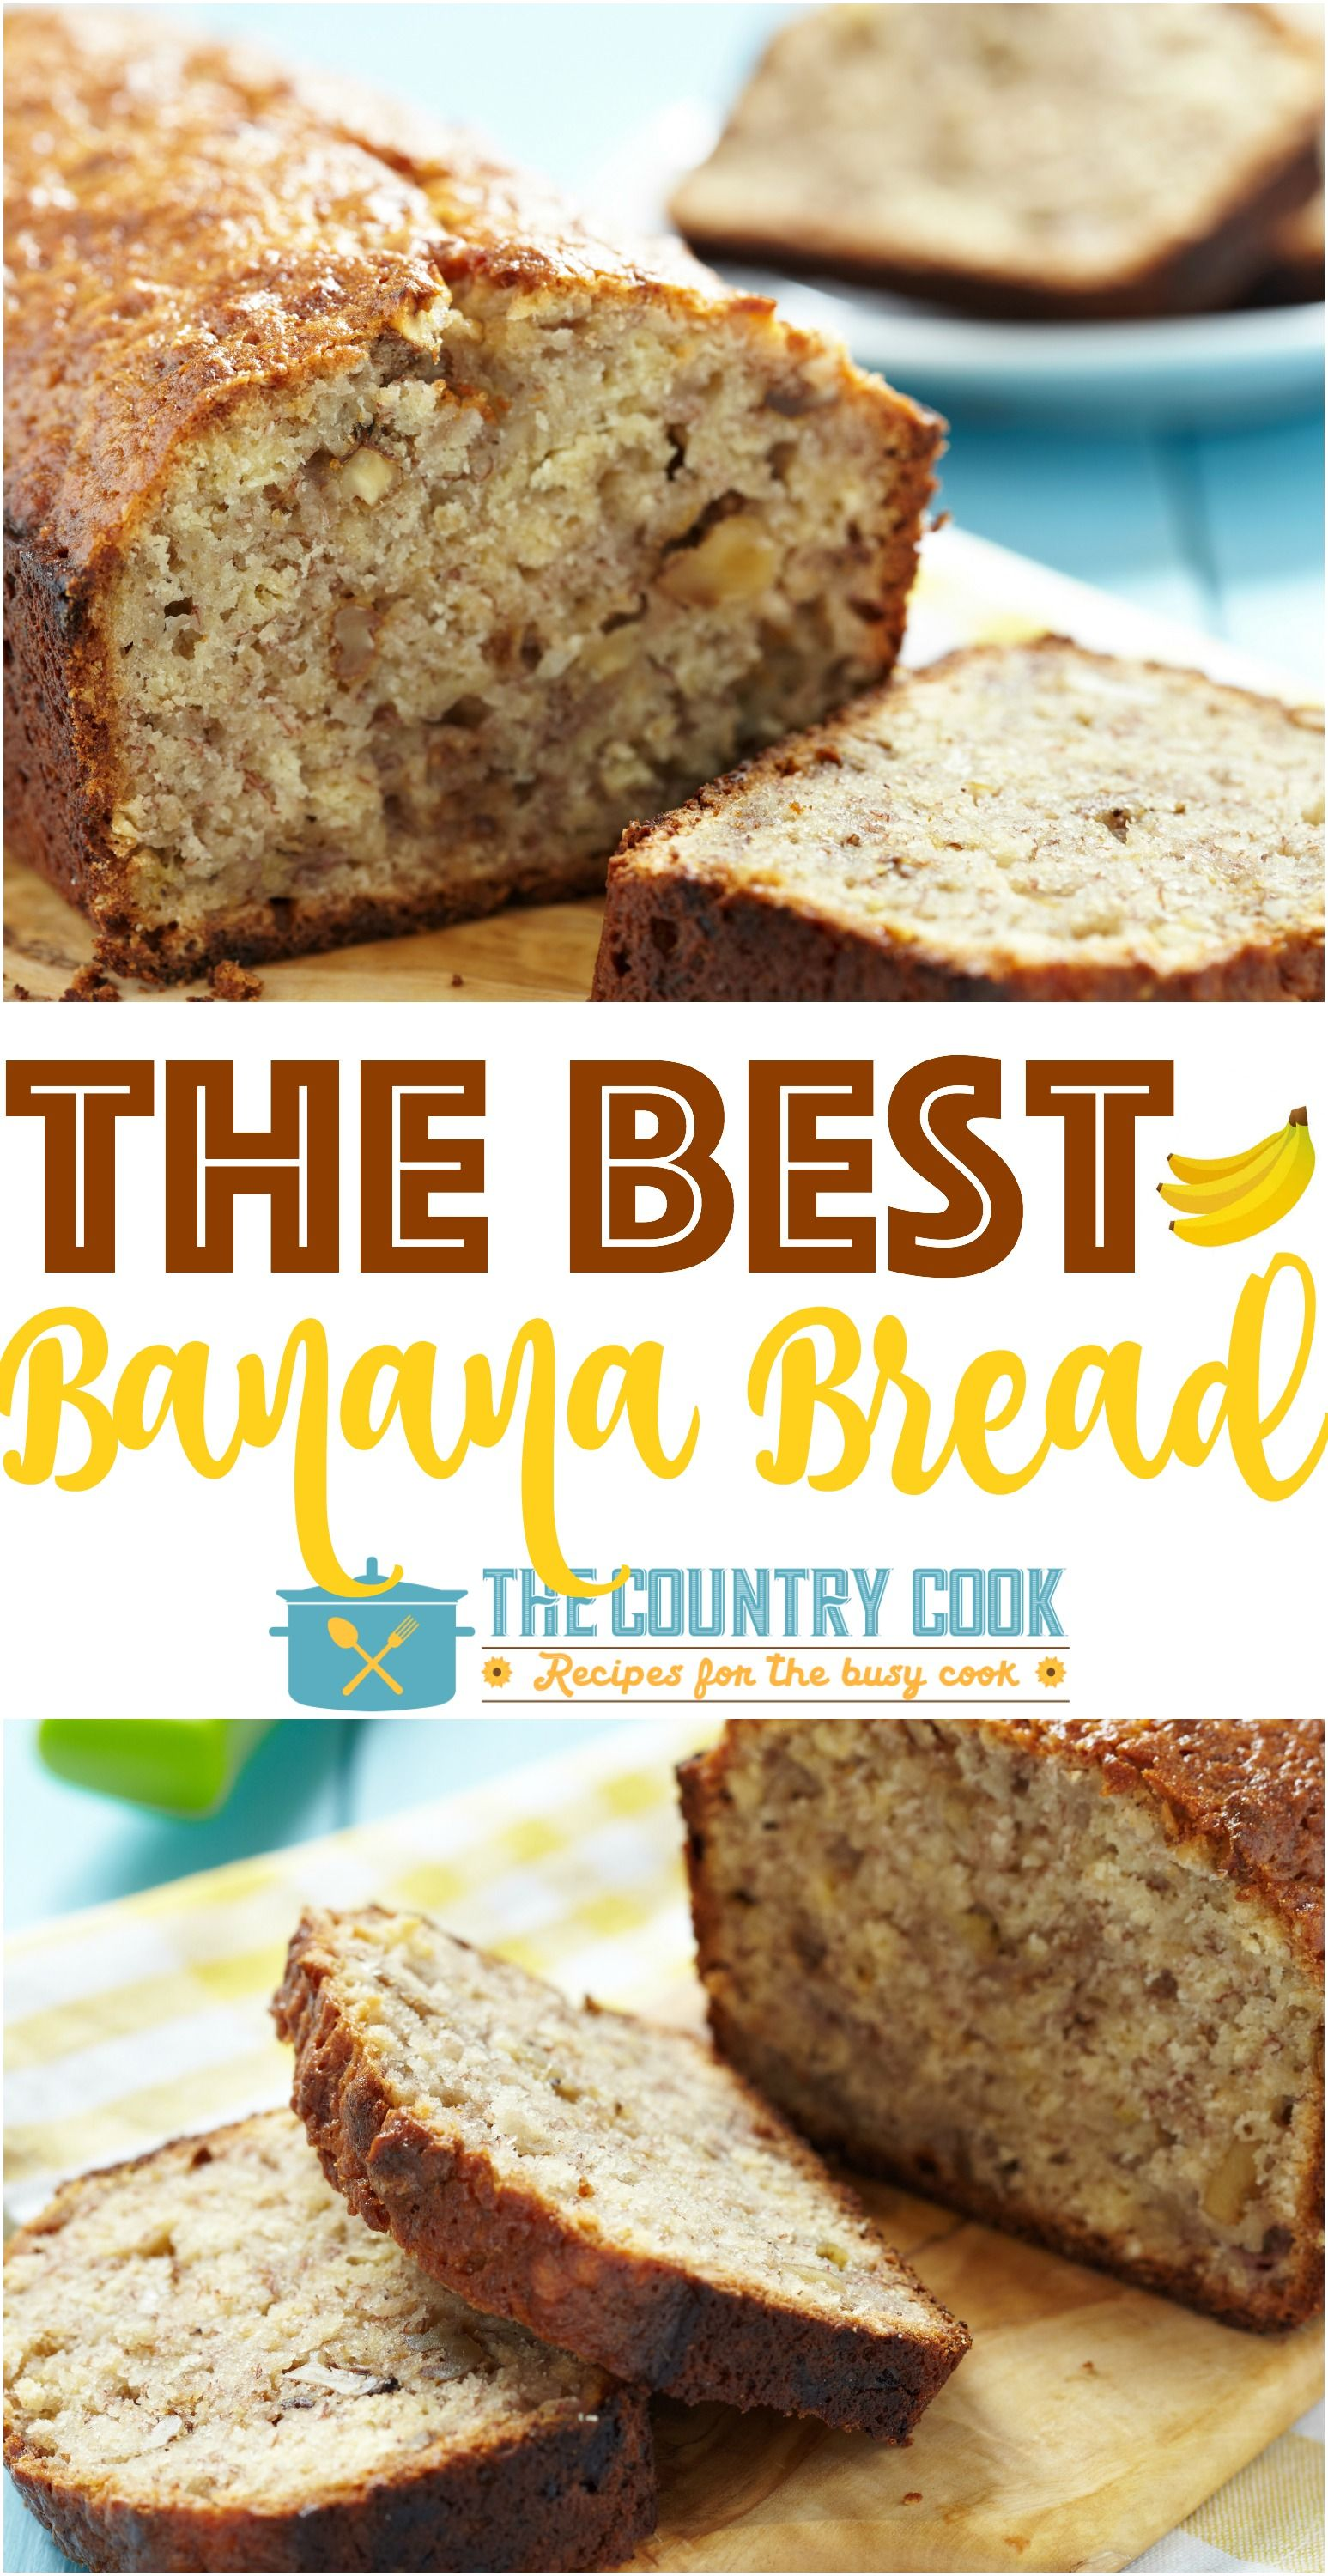 The Best Banana Bread Recipe Video The Country Cook Recipe Banana Nut Bread Recipe Best Banana Bread Banana Nut Bread